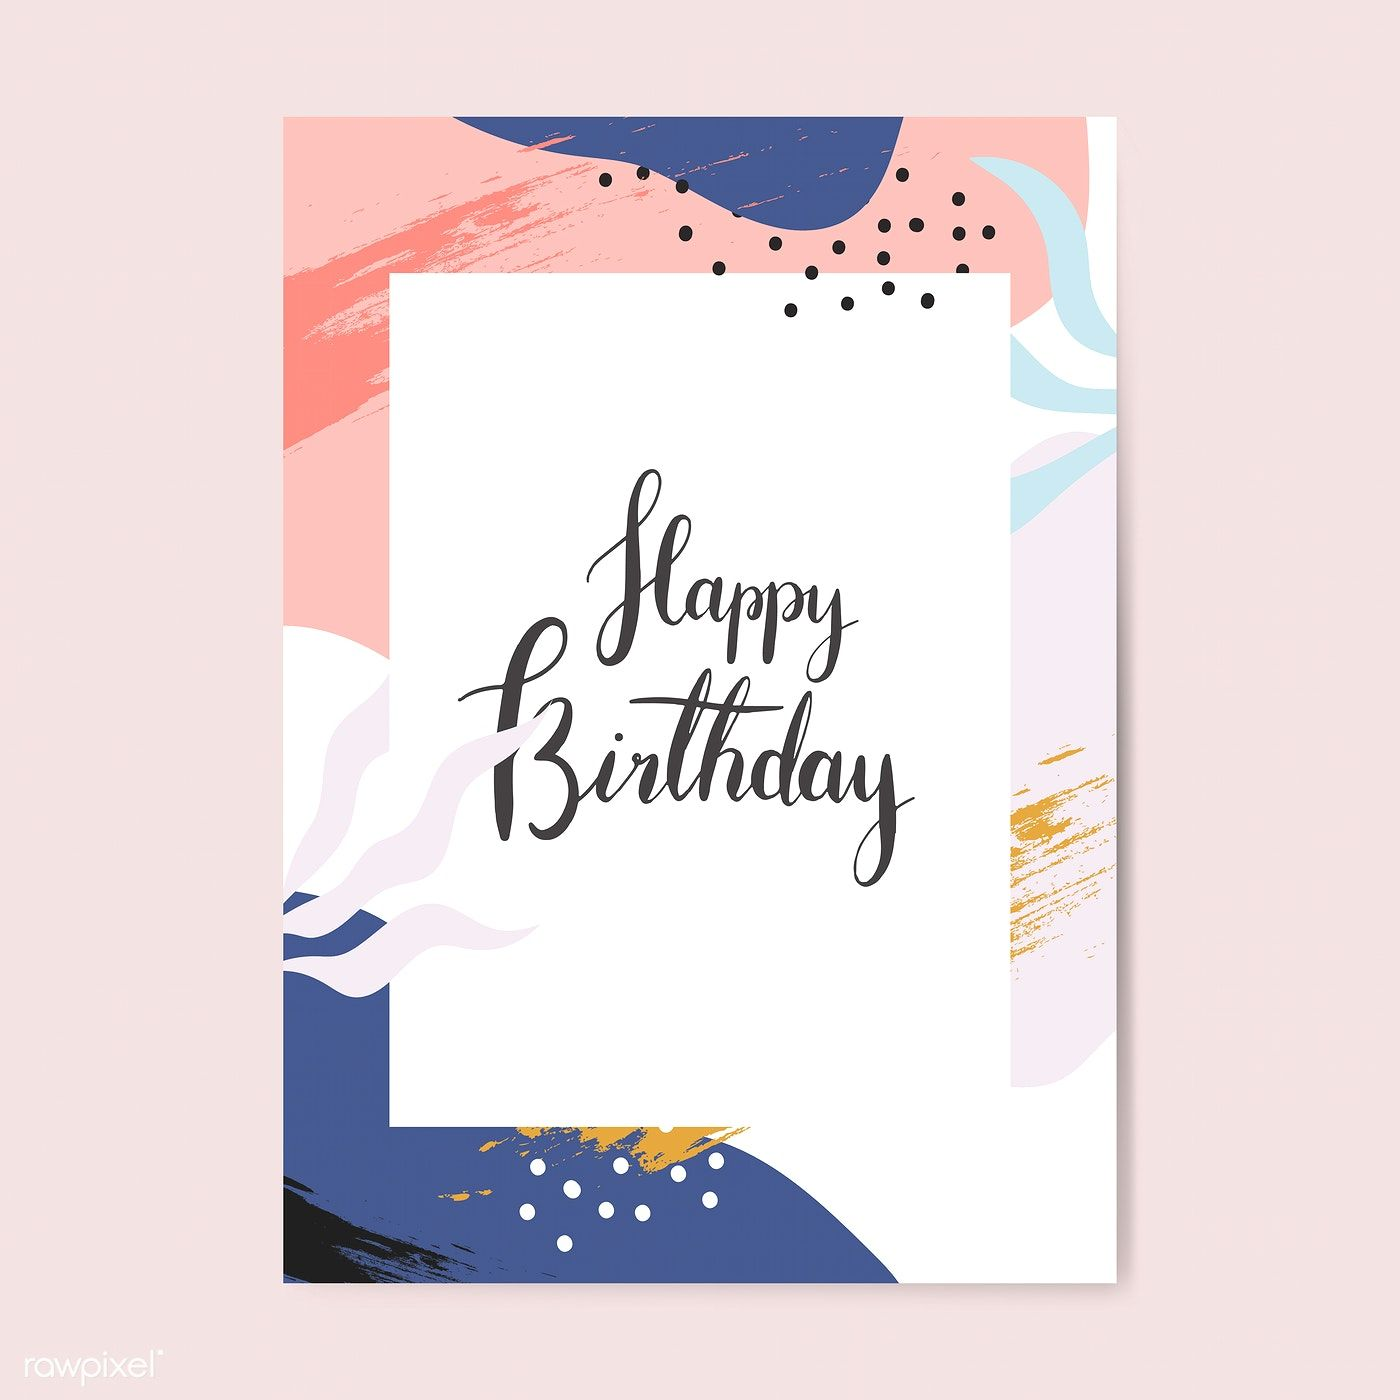 Colorful Memphis Design Happy Birthday Card Vector Free Image By